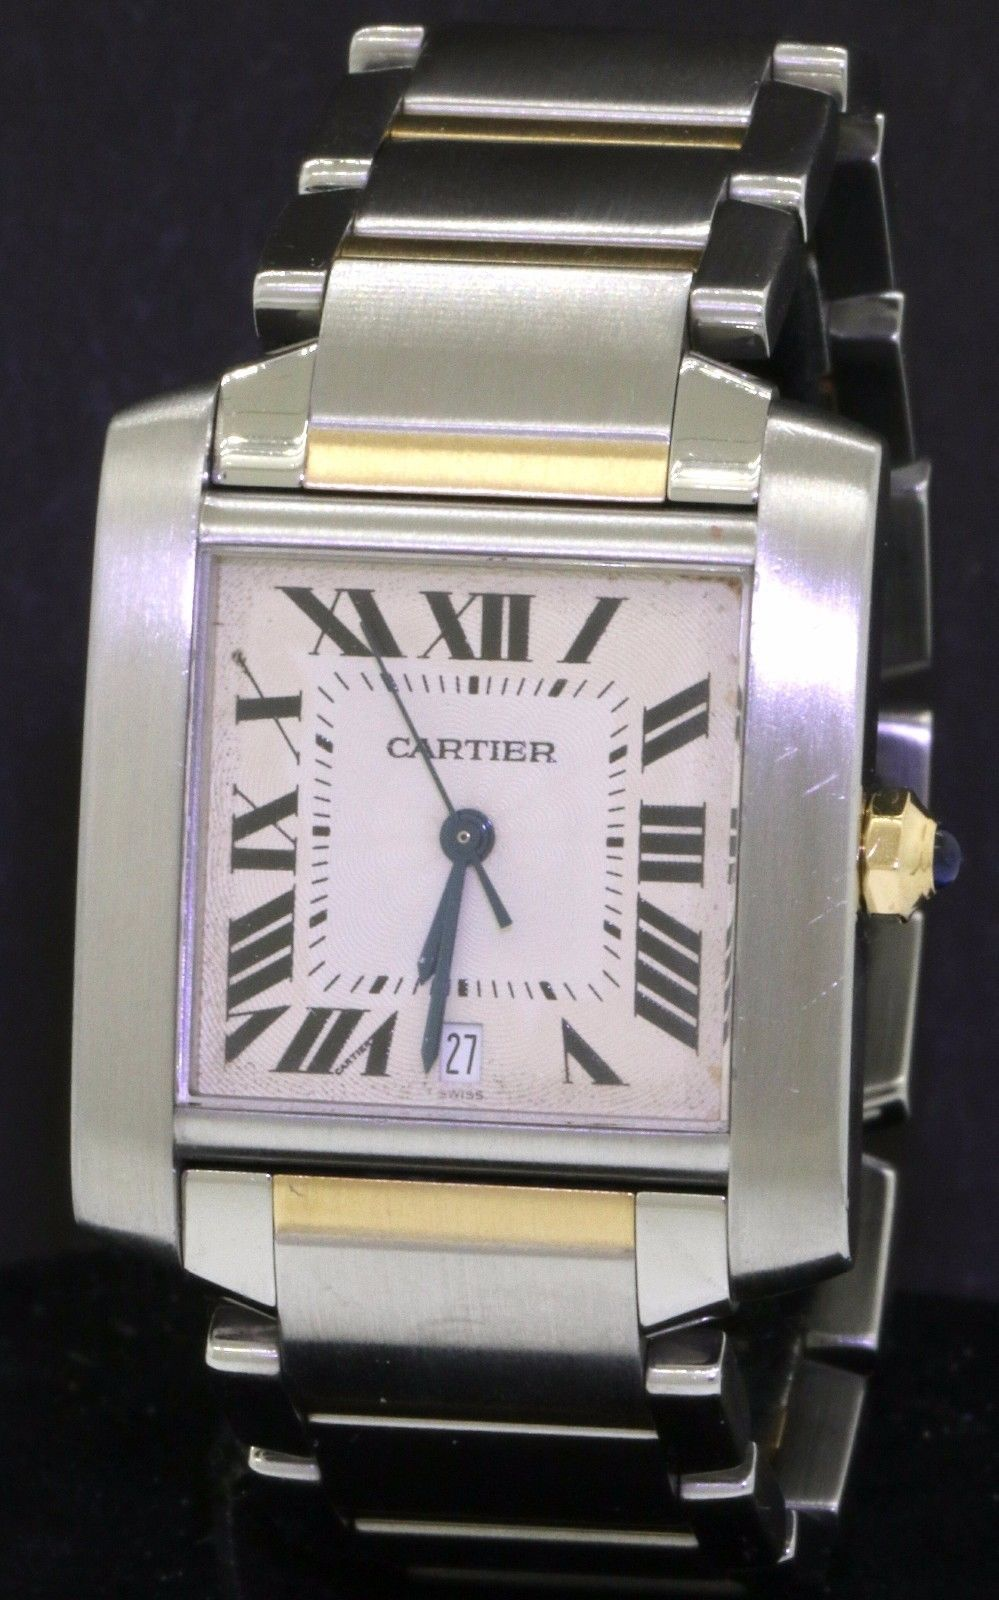 19d26eb8ac38 Cartier Tank Francaise 2302 SS 18K gold high fashion automatic men s watch